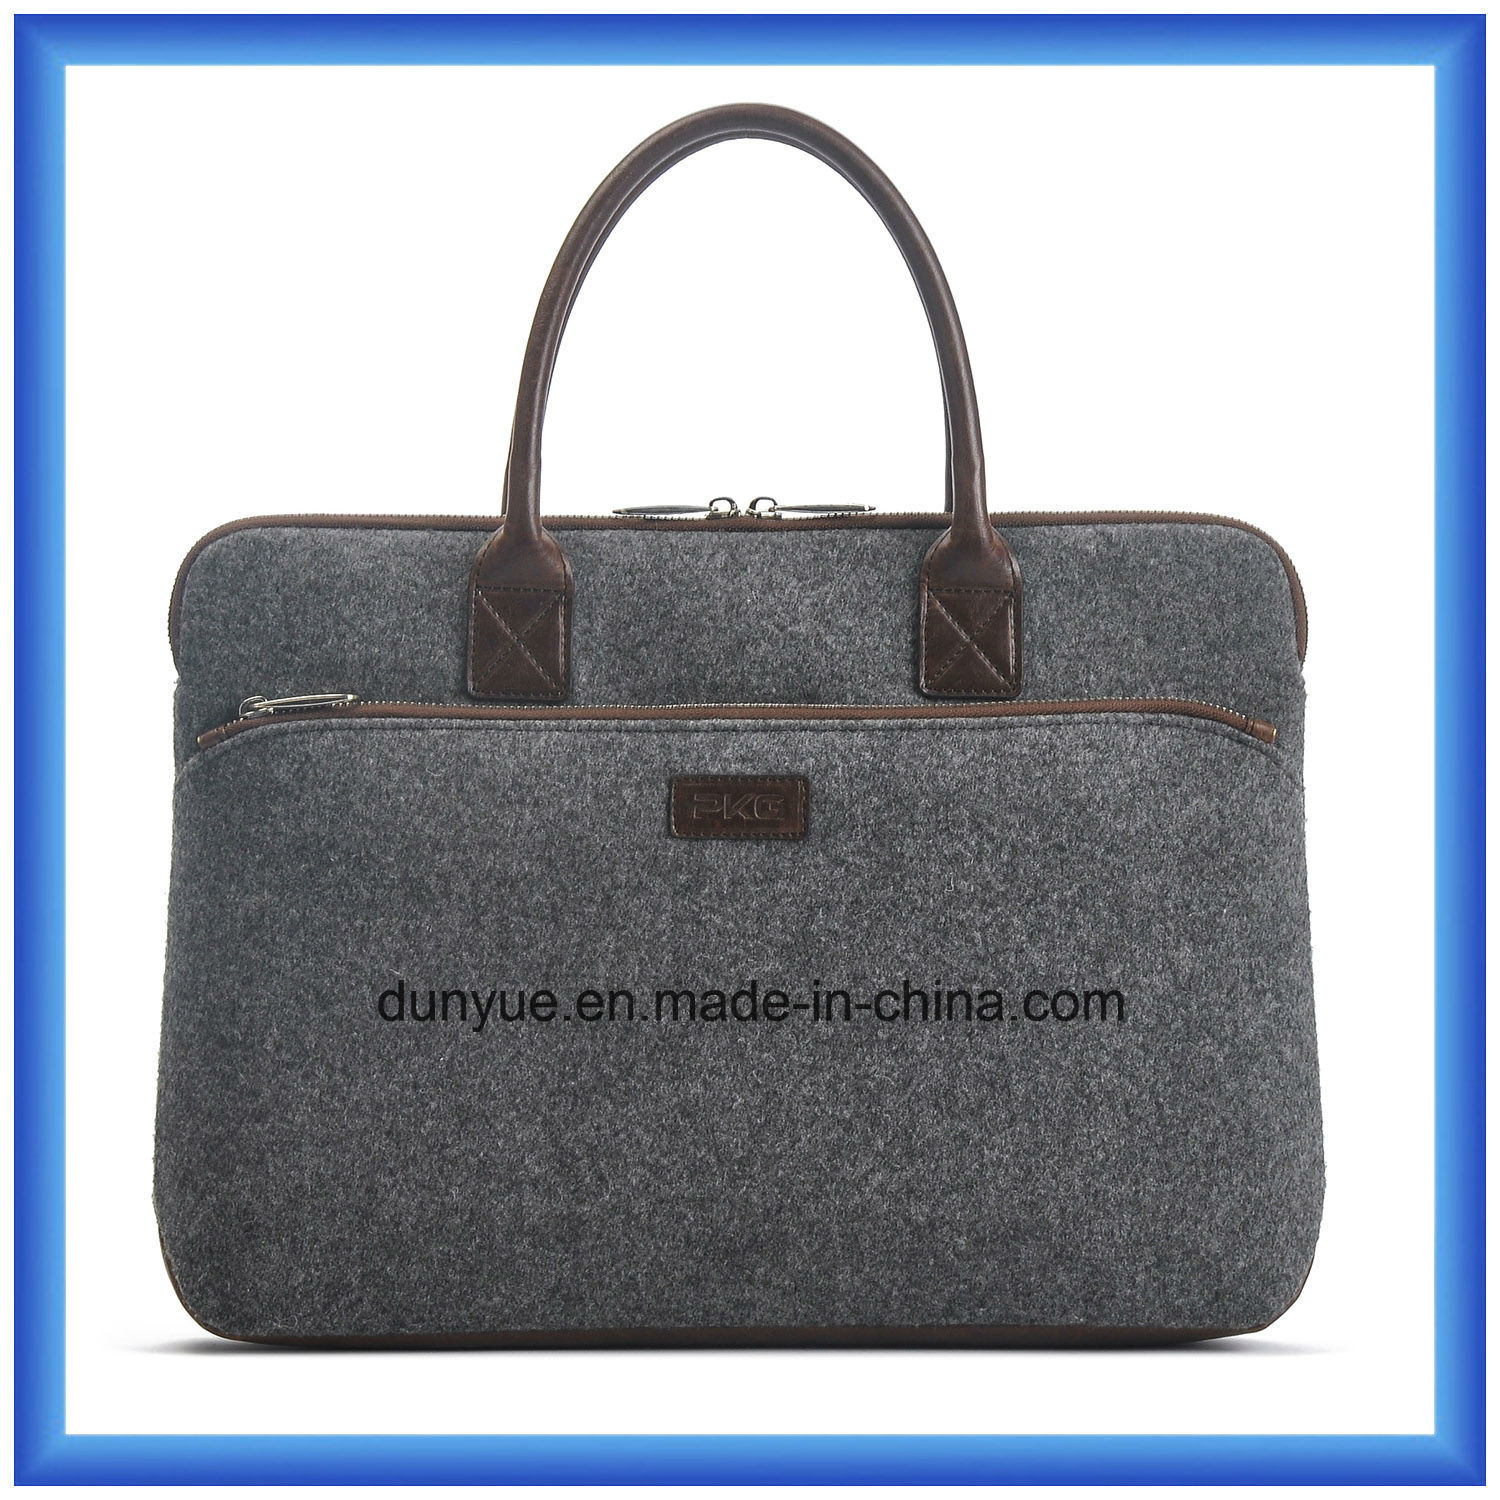 Simple Design Eco-Friendly Portable Wool Felt Laptop Handle Bag, Customized Soft Laptop Tote Hand Bag with Leather Comfortable Handle